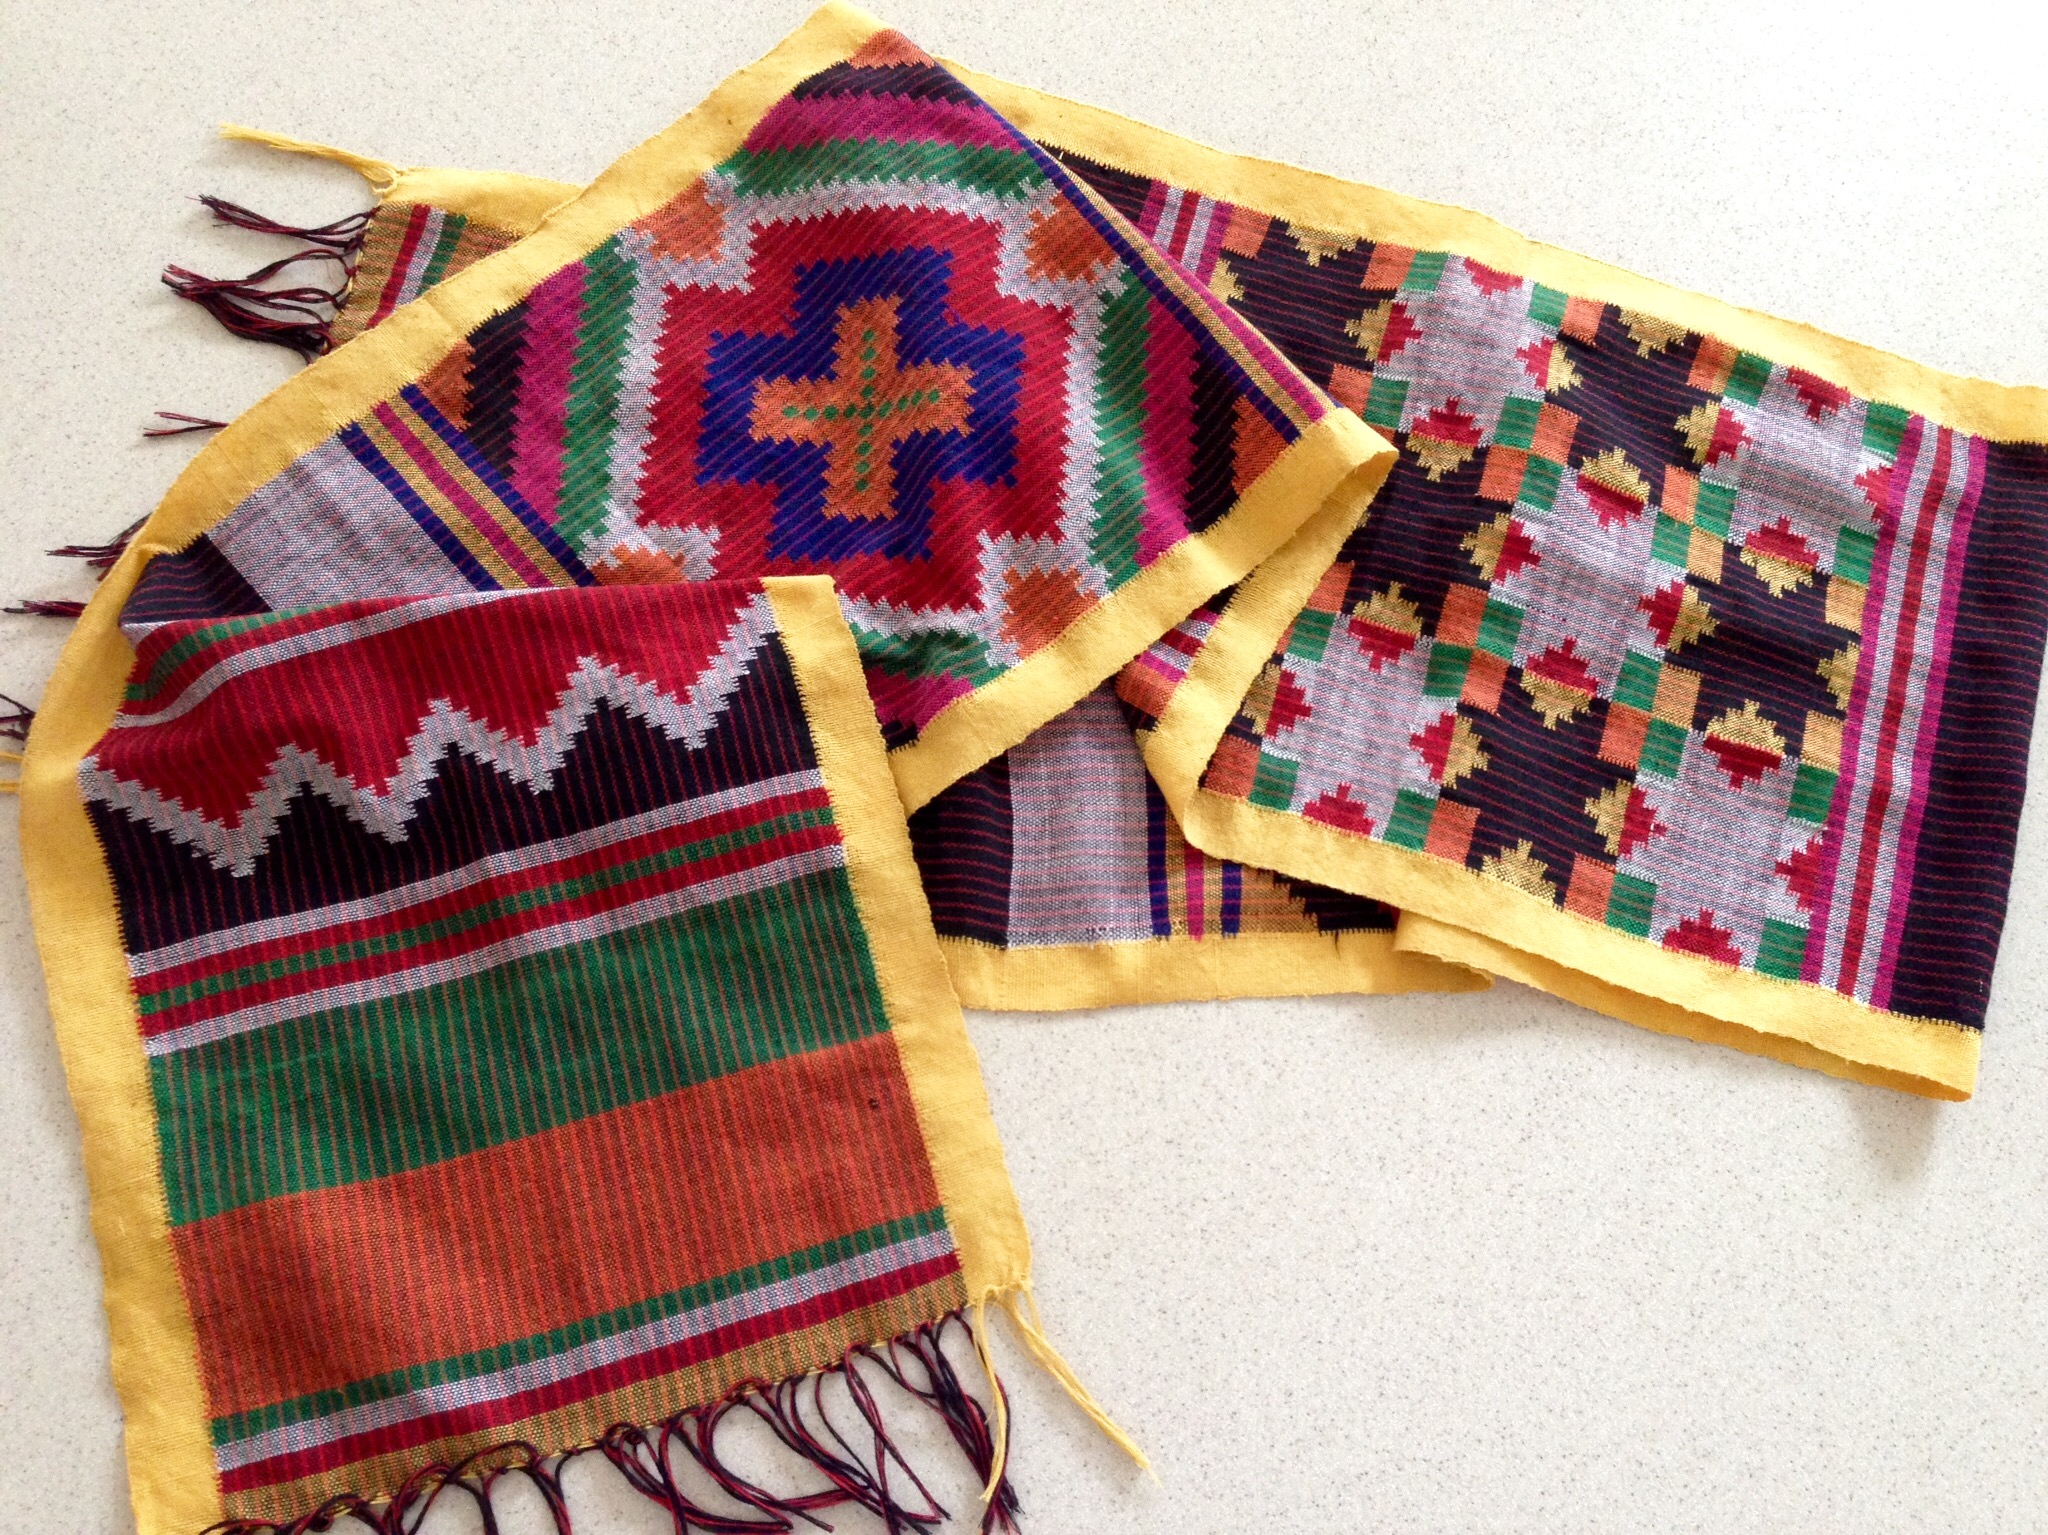 Textiles From The Philippines Warped For Good